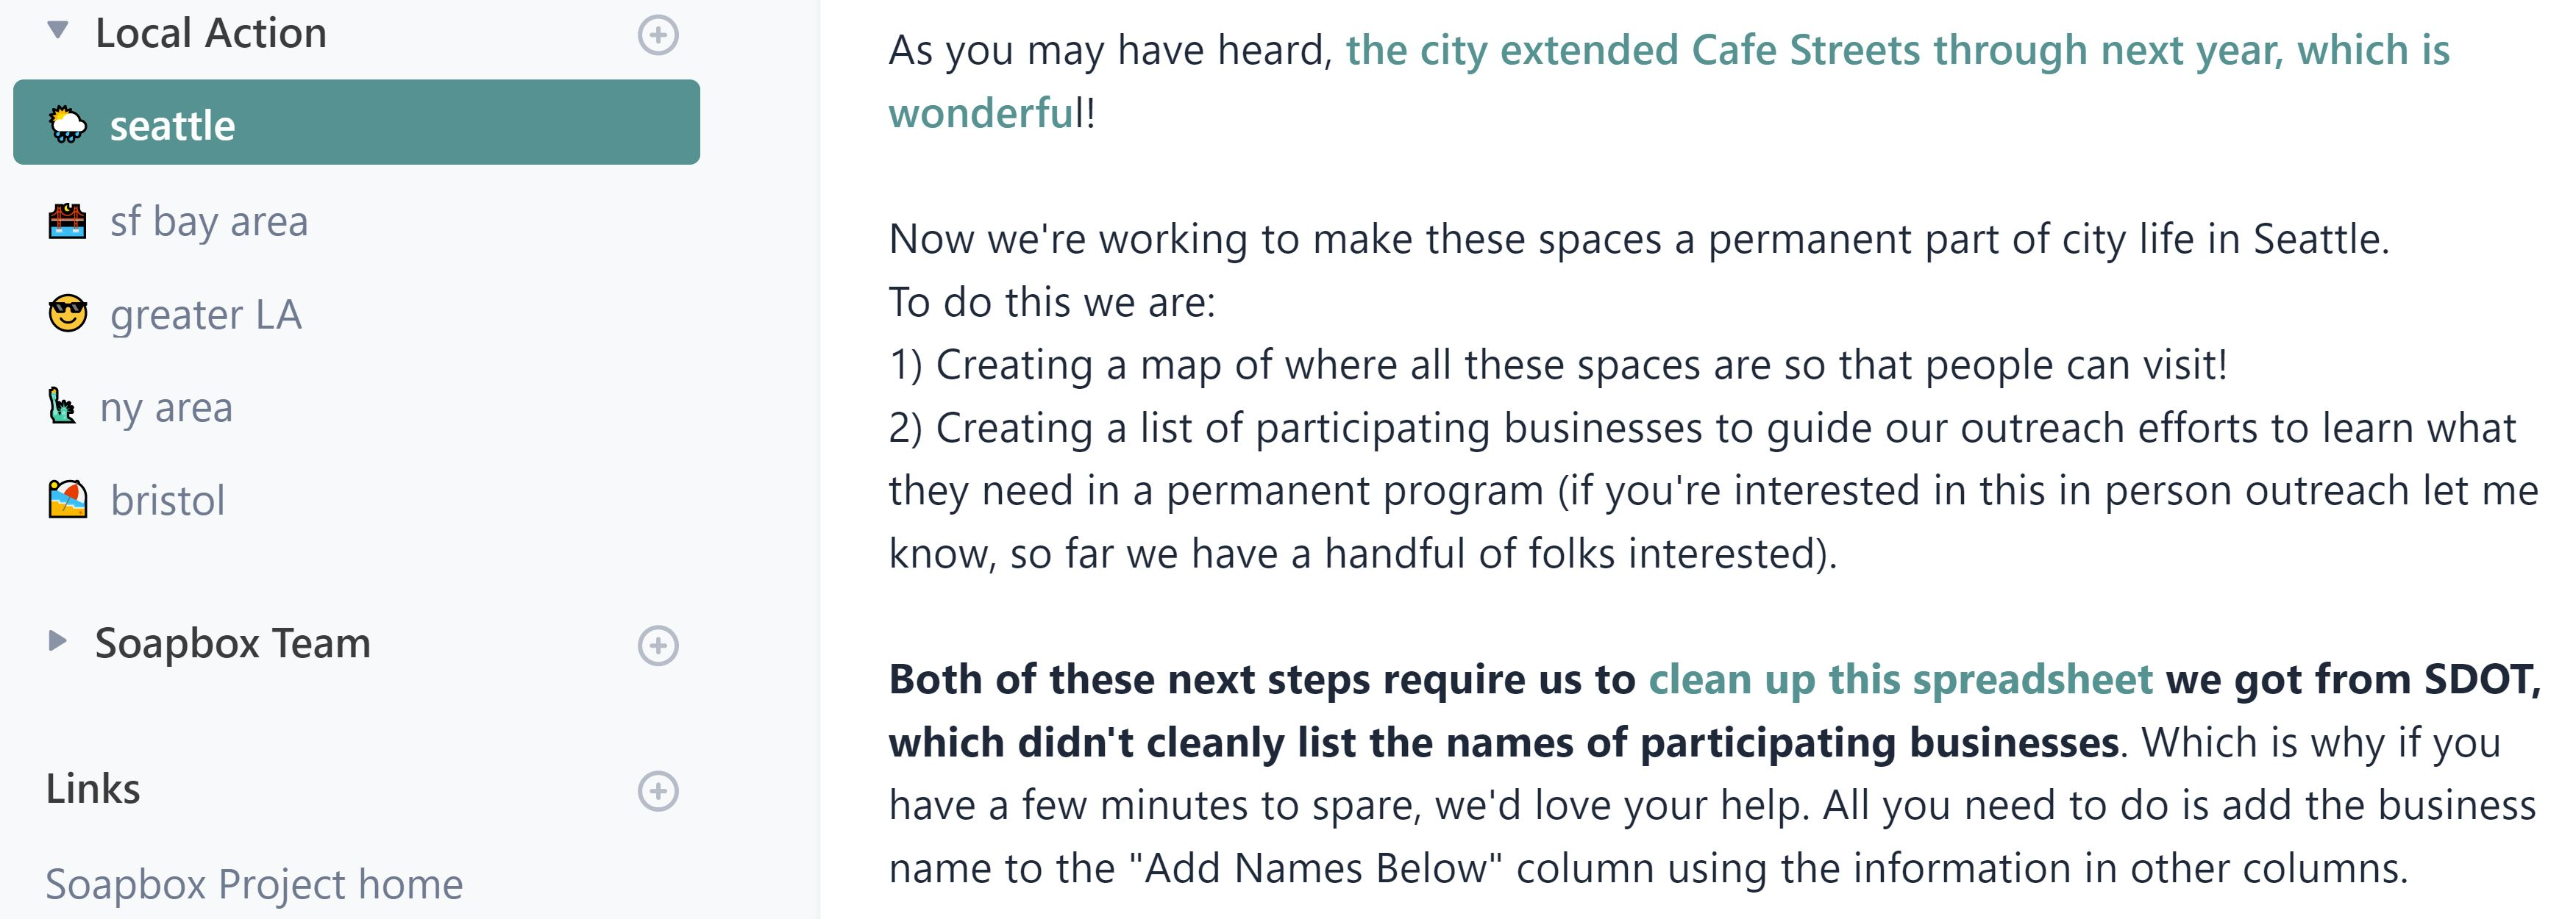 Screenshot from our community of hyperlocal urban planning advocacy to keep outdoor dining over parking spaces